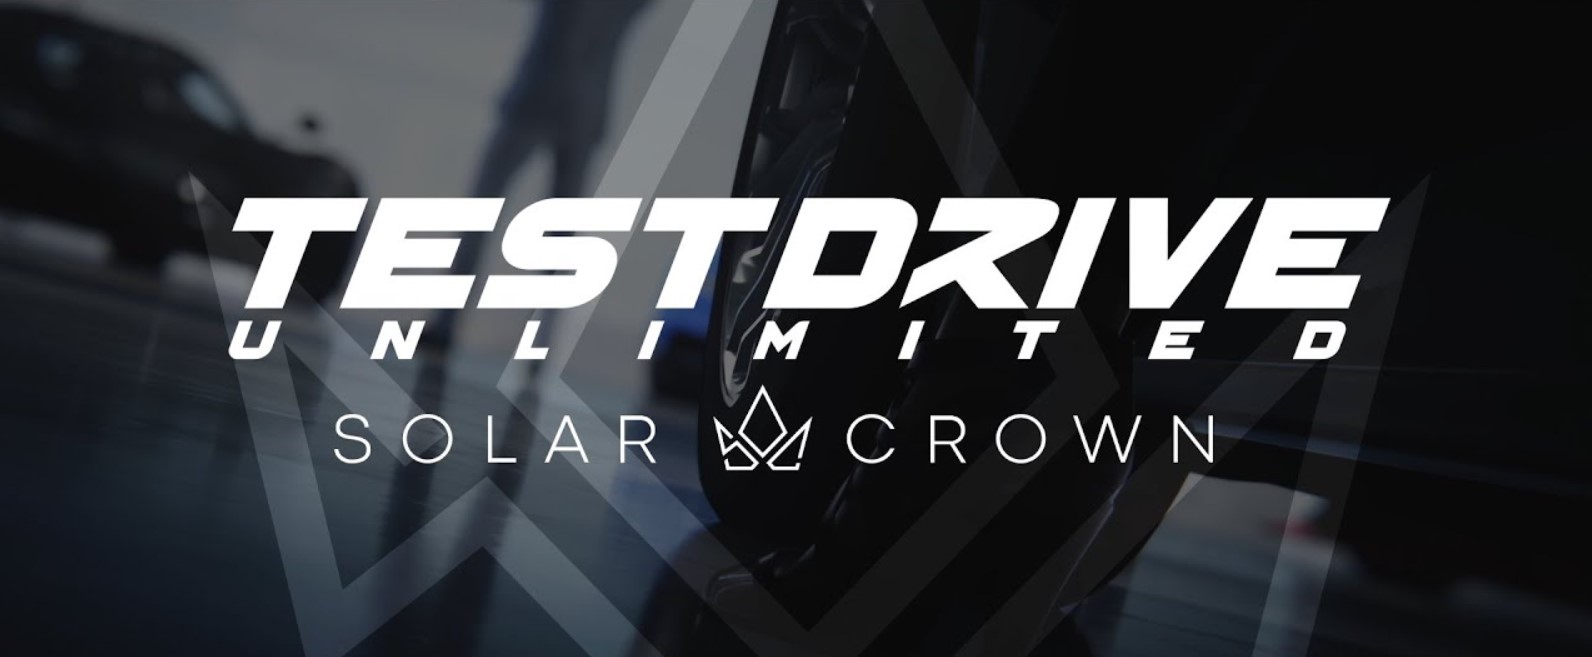 Test Drive Unlimited Solar Crown Full Game Free Download